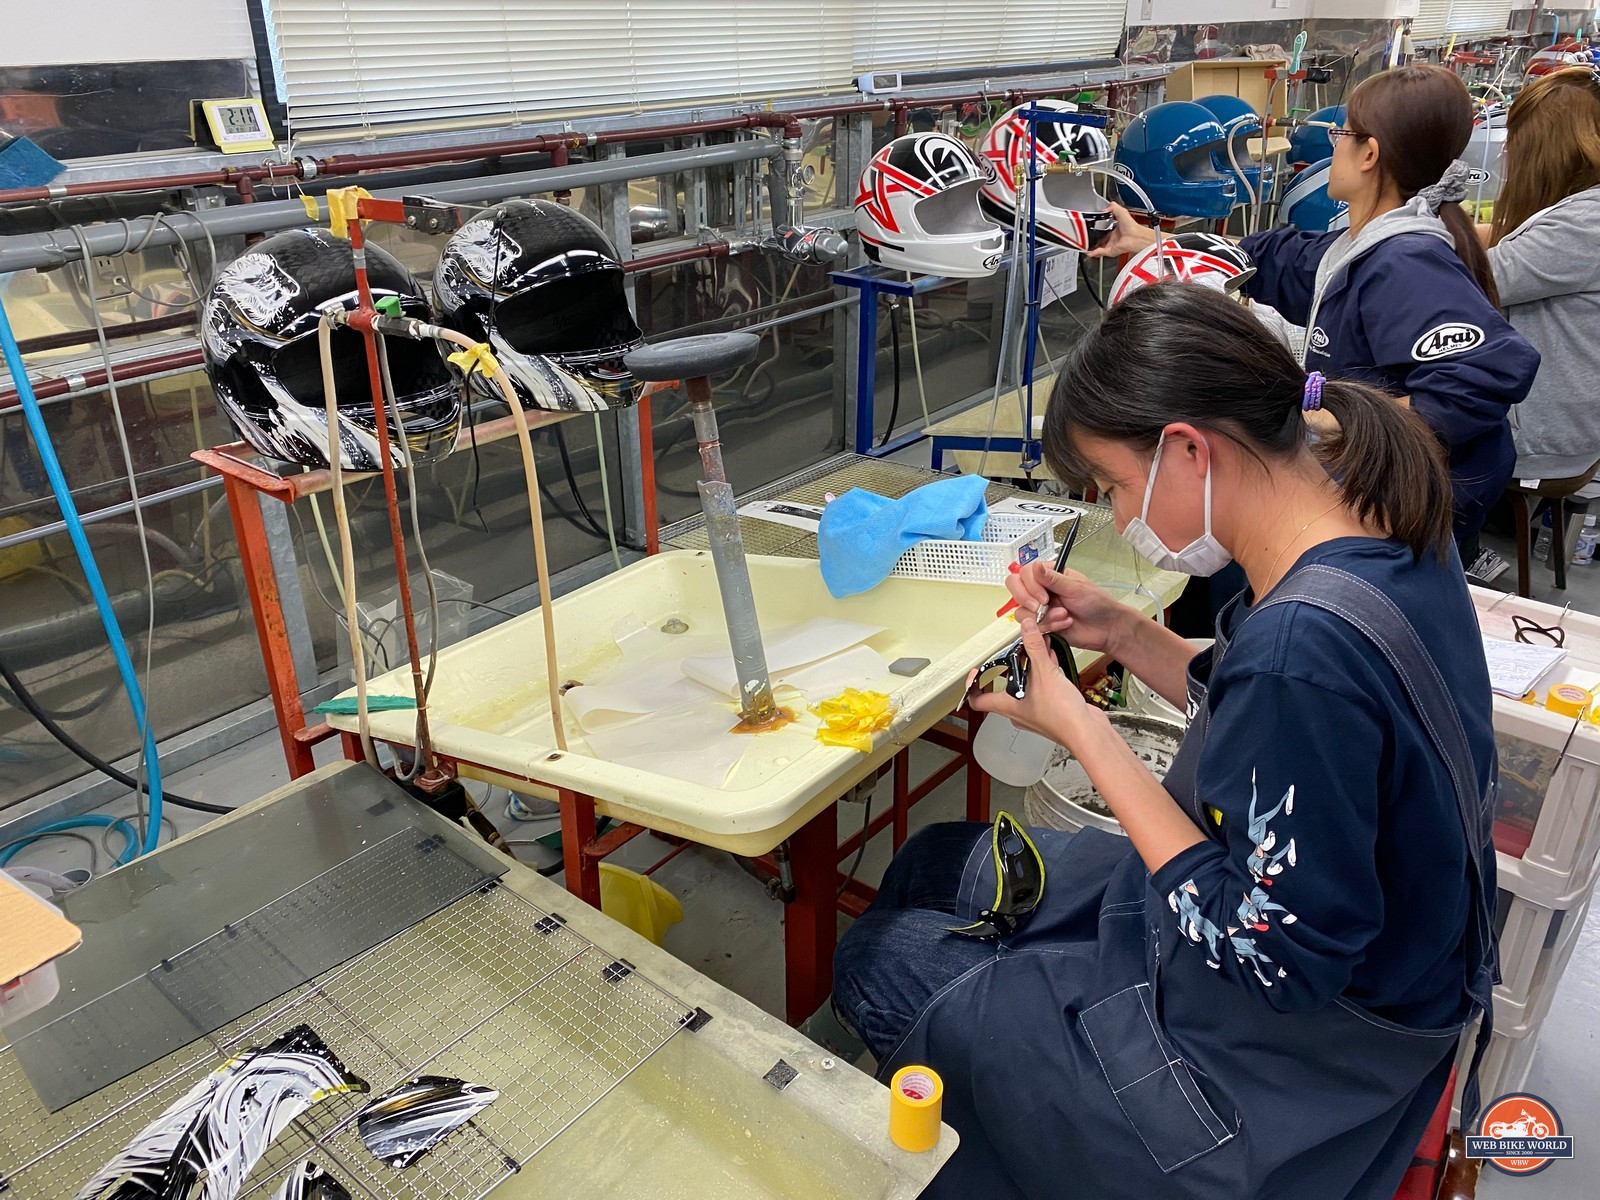 Workers carefully apply decals to helmets at the Arai factory.